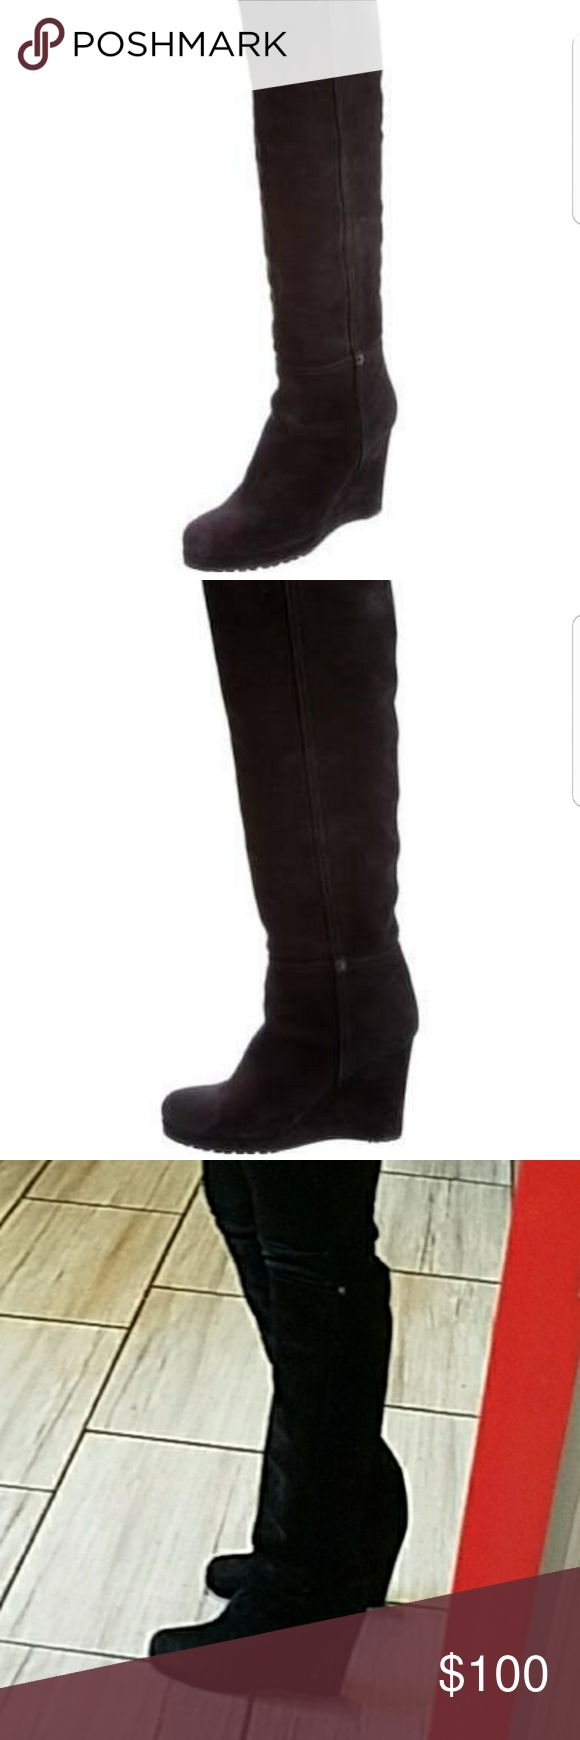 Authentic Prada suede boots  38 $$$firm $$ Black suede wedge boots Prada Shoes